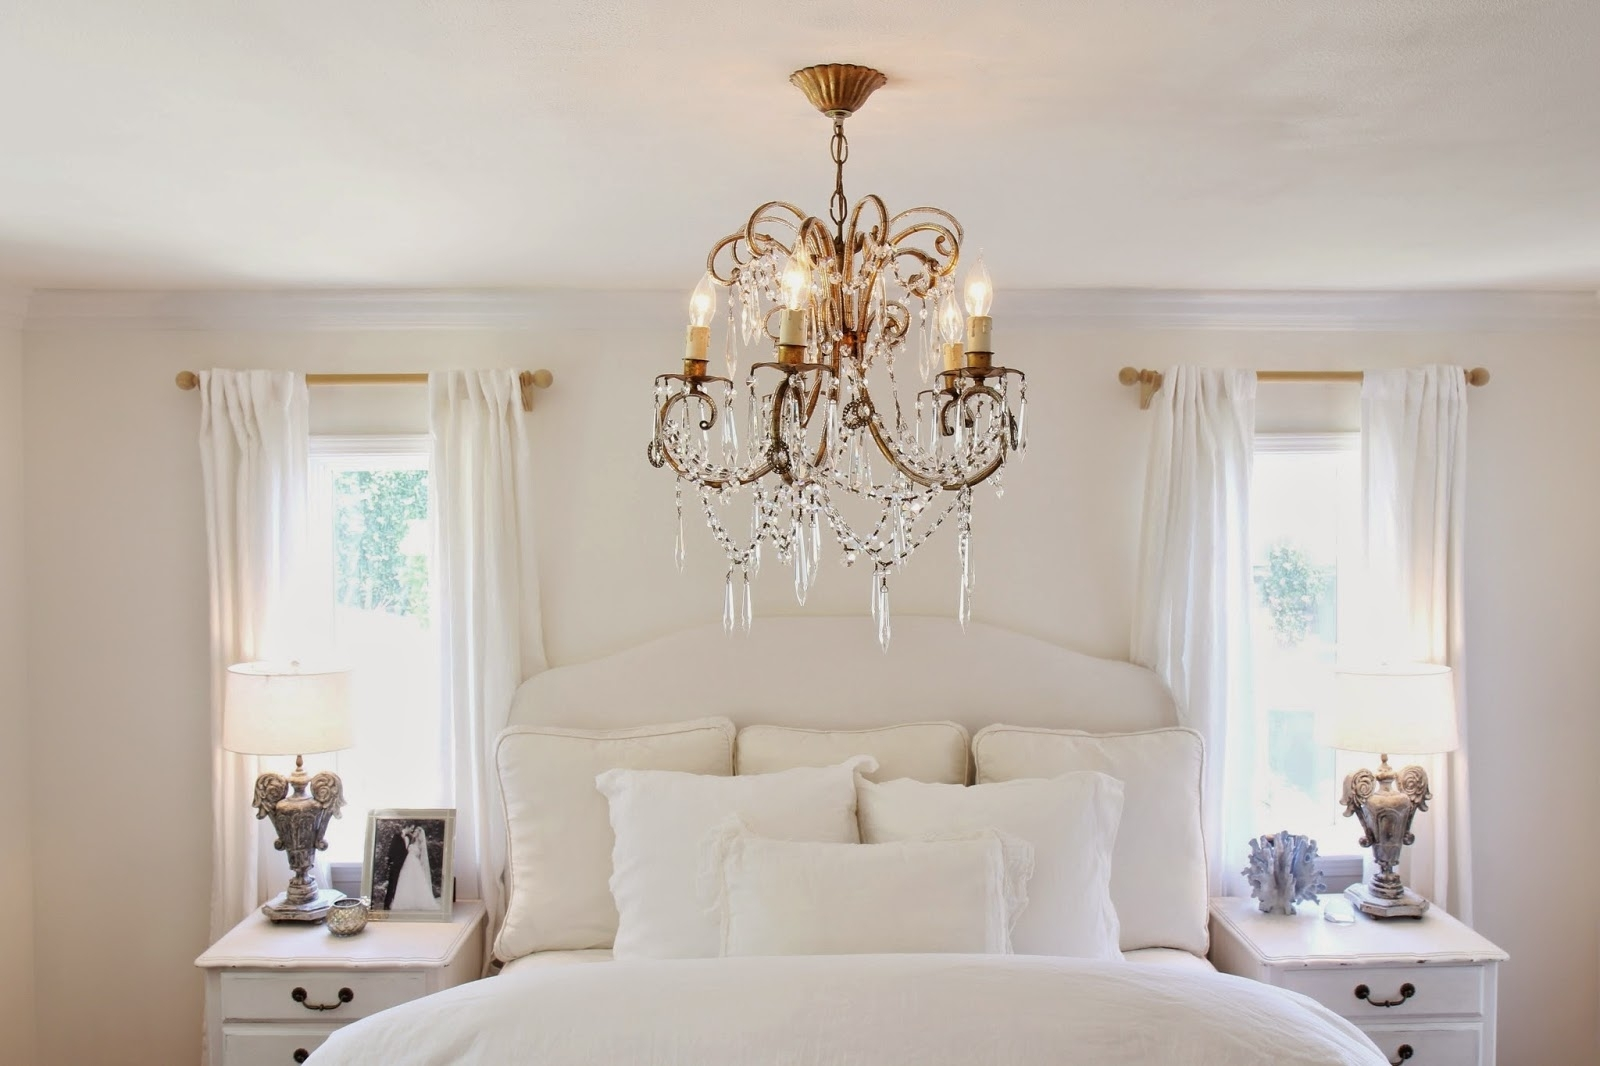 Chandeliers In The Bedroom With Regard To Fashionable Nora's Nest: A Chandelier For The Master Bedroom (View 10 of 15)